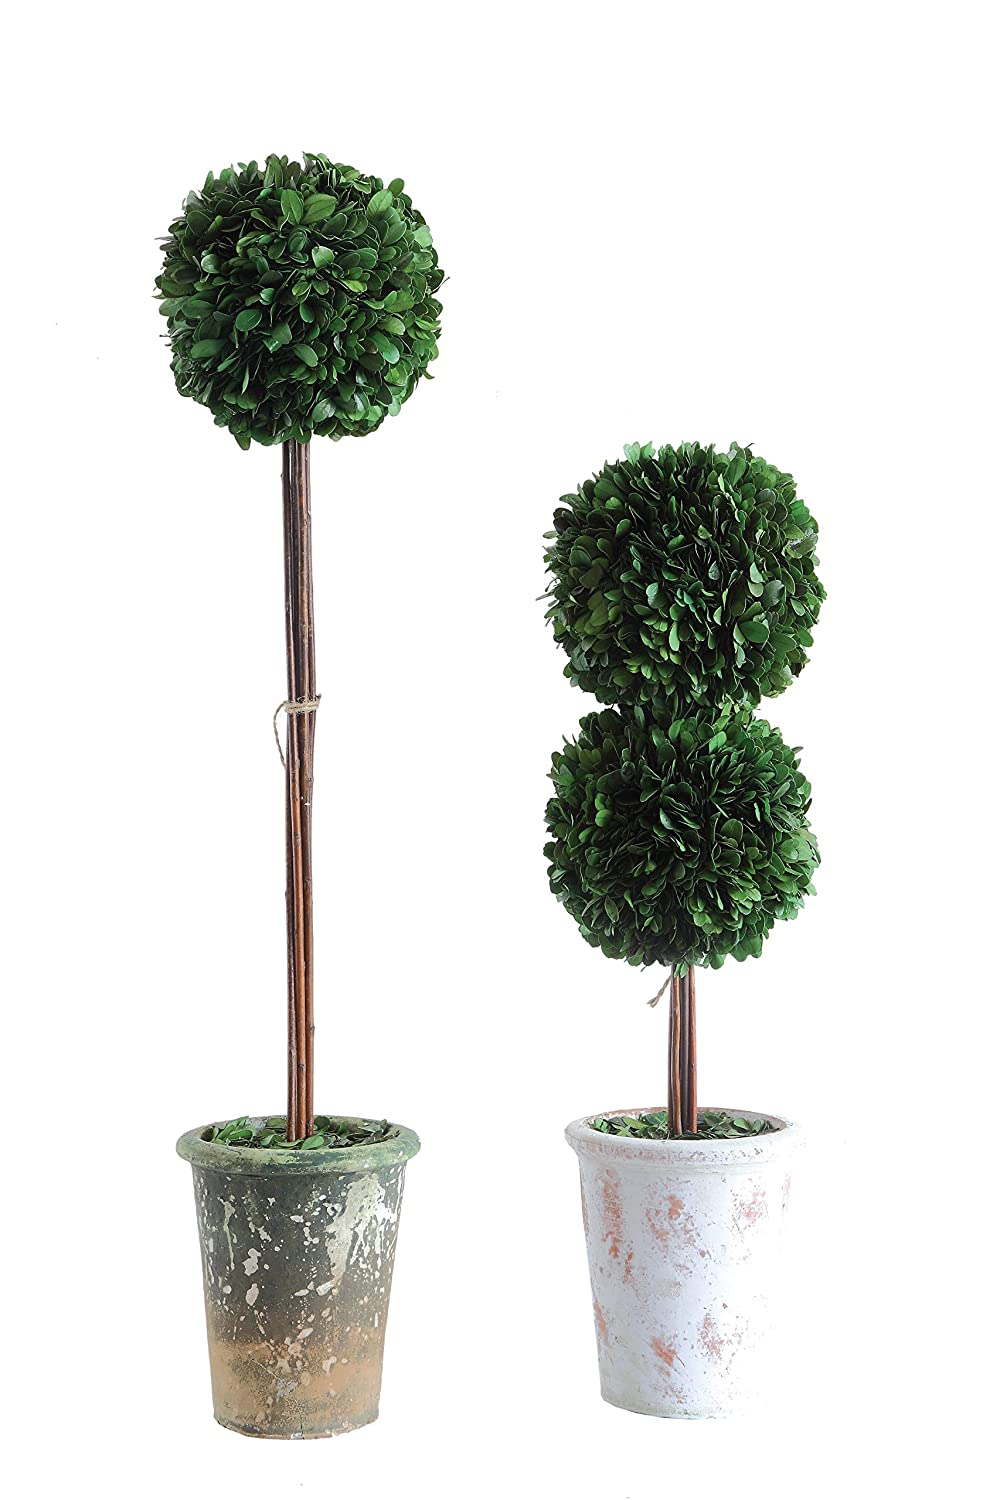 Boxwood topiaries in clay pots for European country and French farmhouse style spaces.